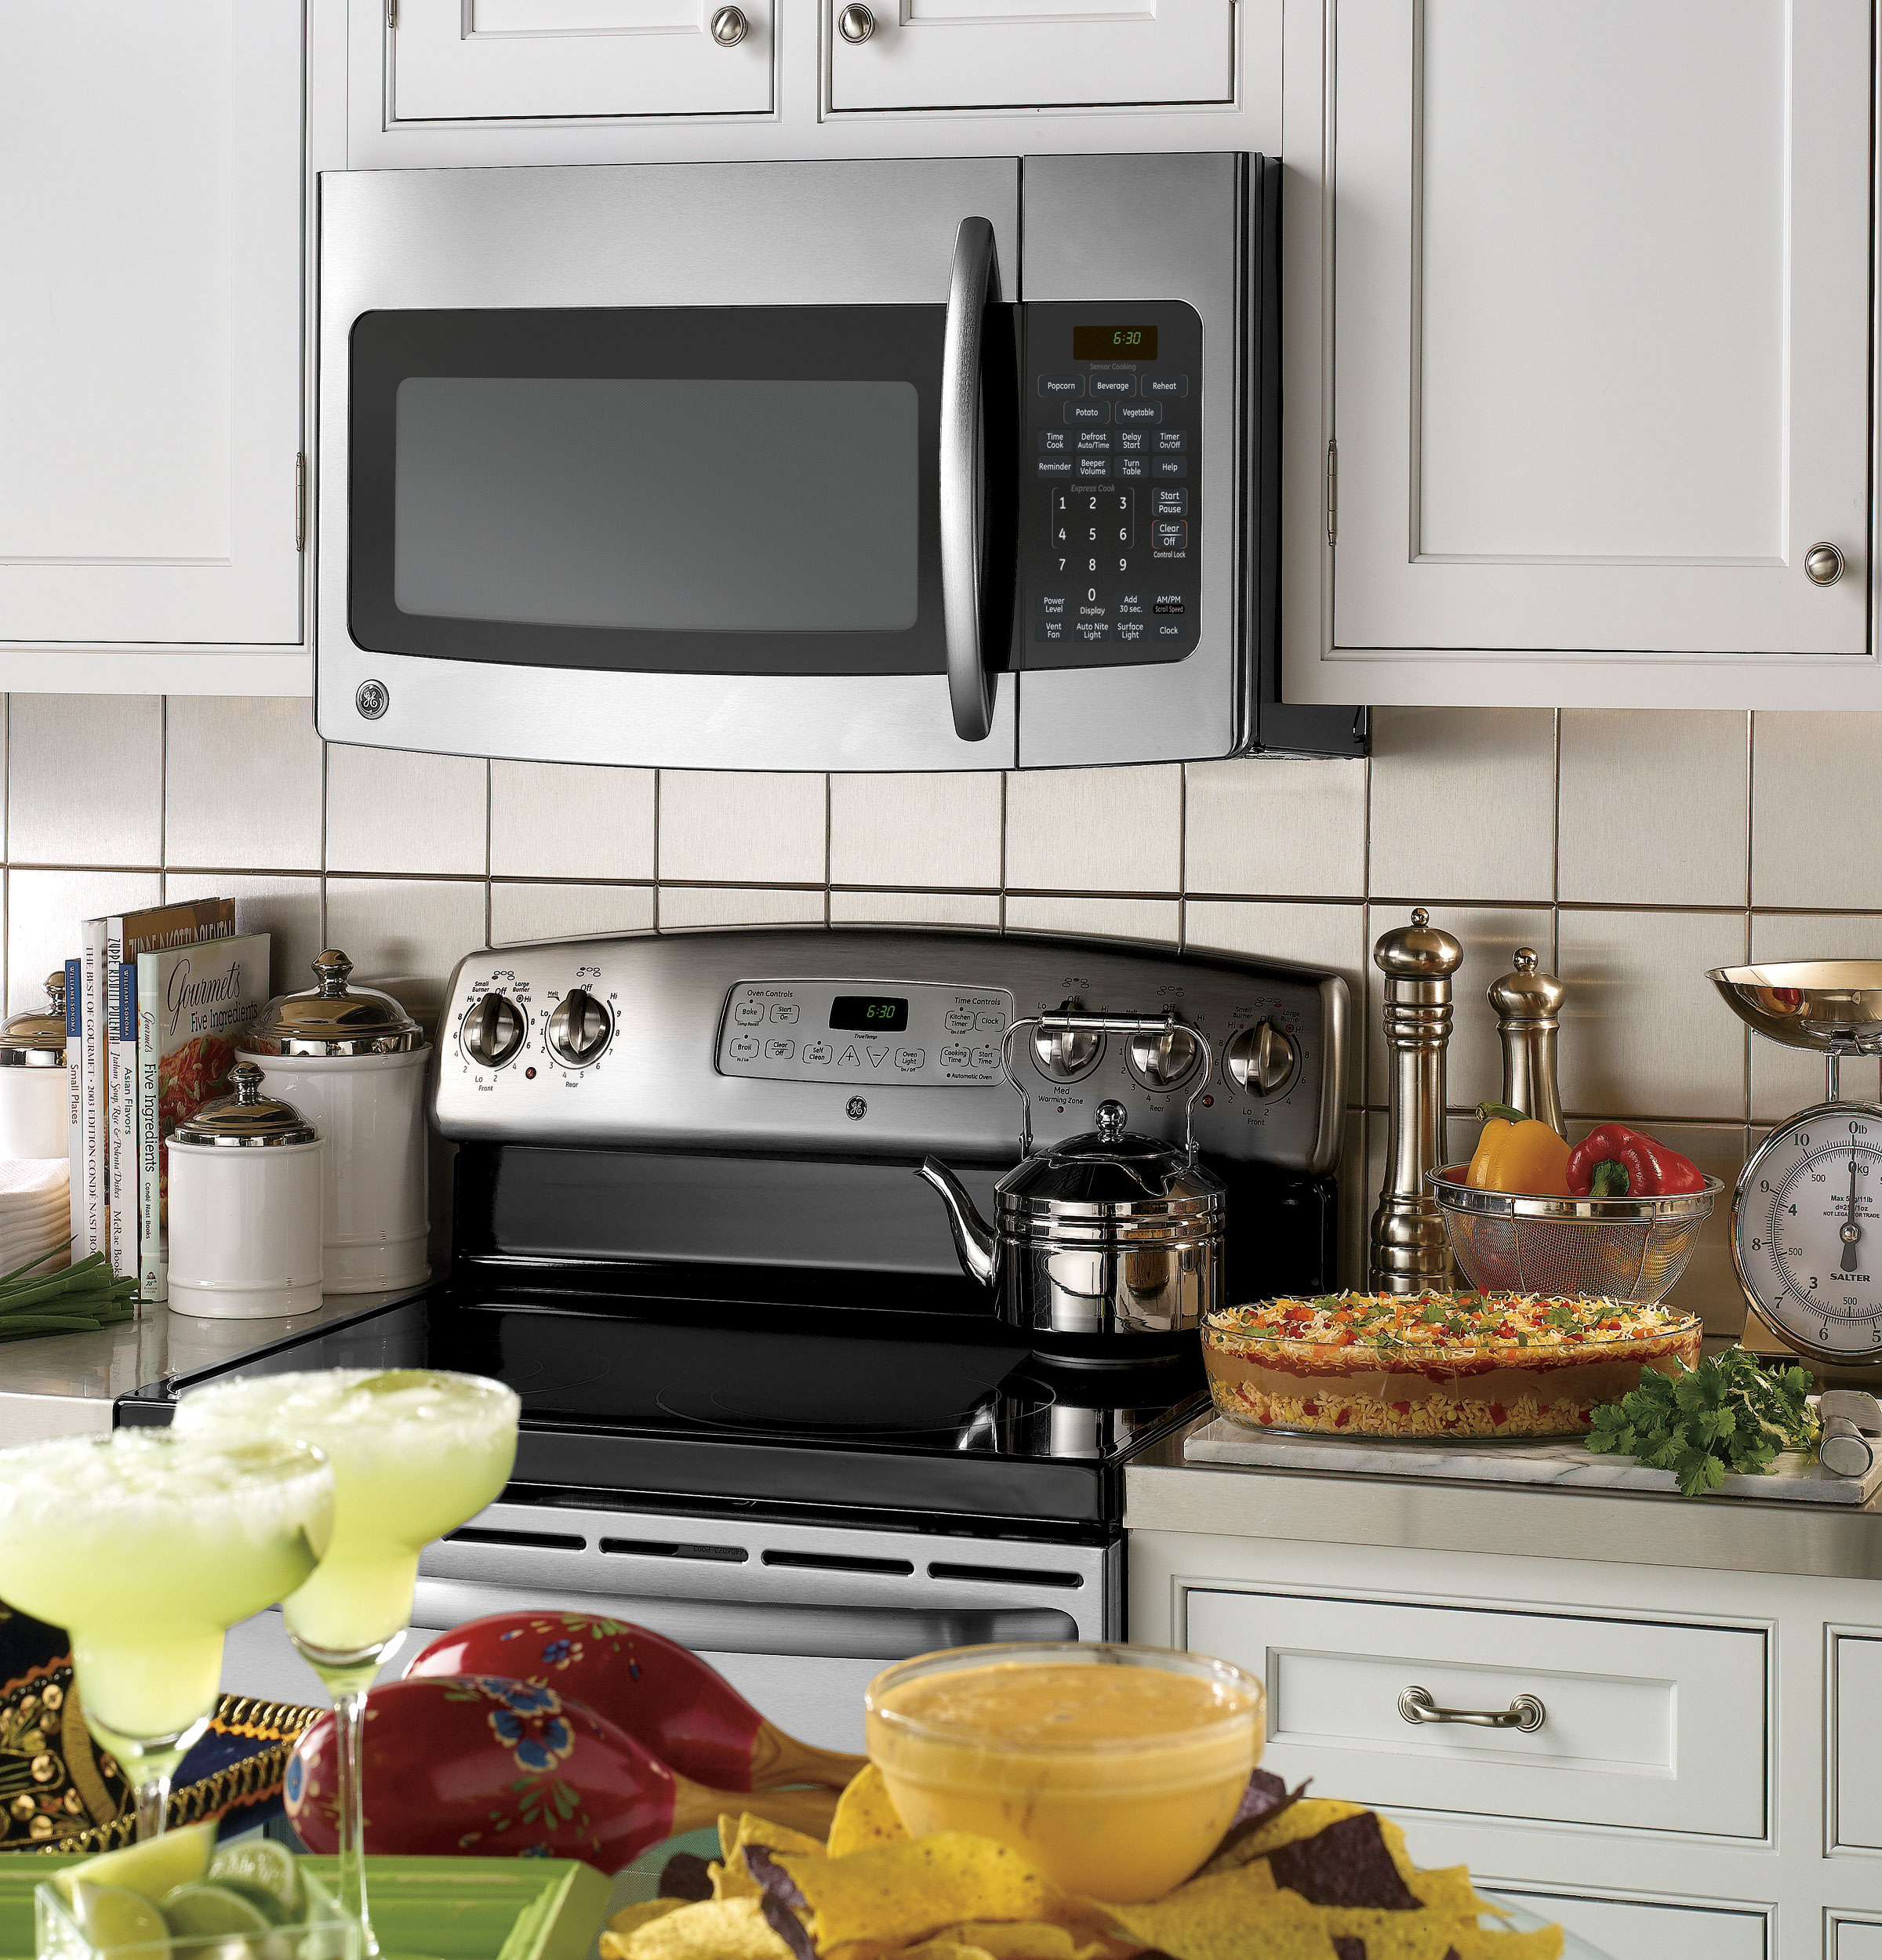 Installation of an over the range microwave - Product Image Product Image